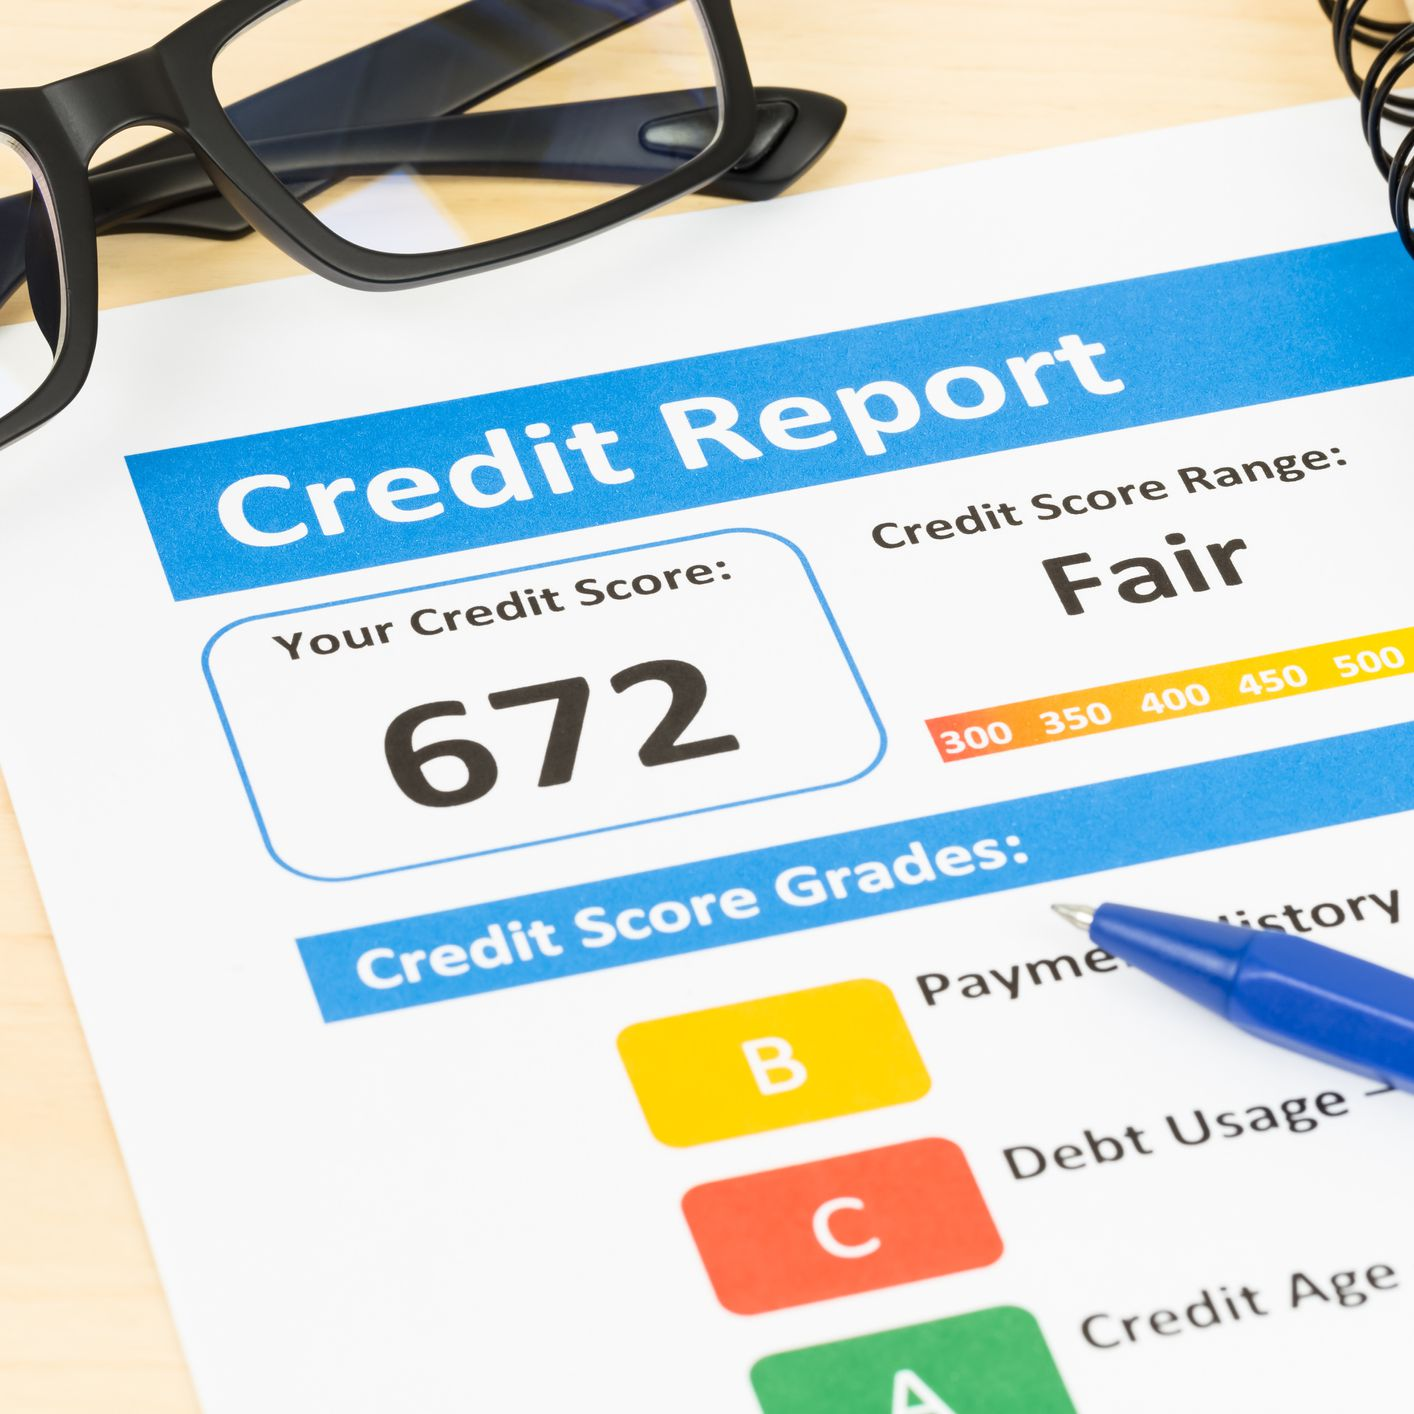 Getting a Personal Loan With Fair Credit